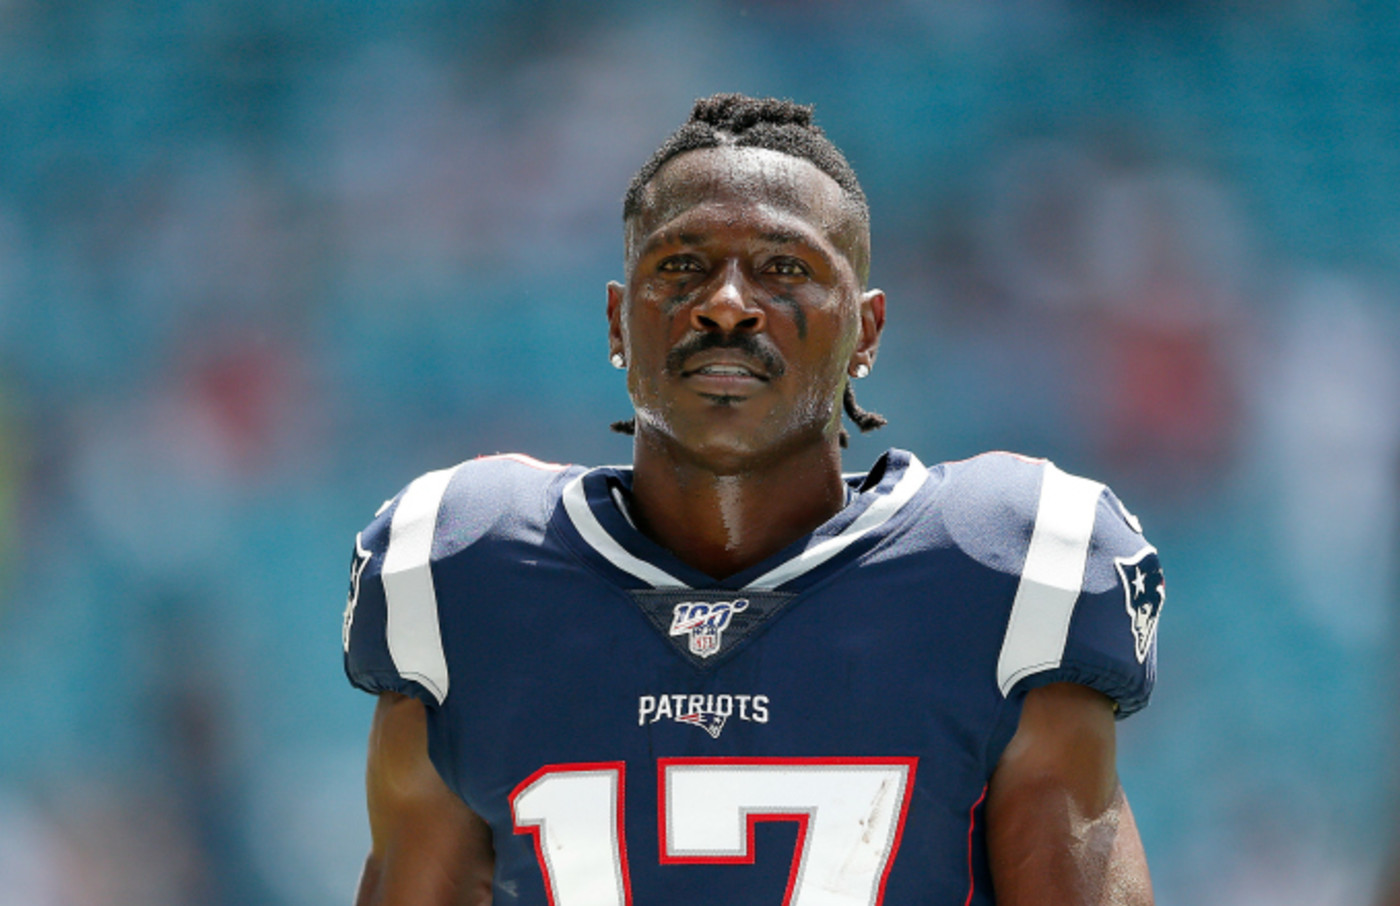 Antonio Brown #17 of the New England Patriots